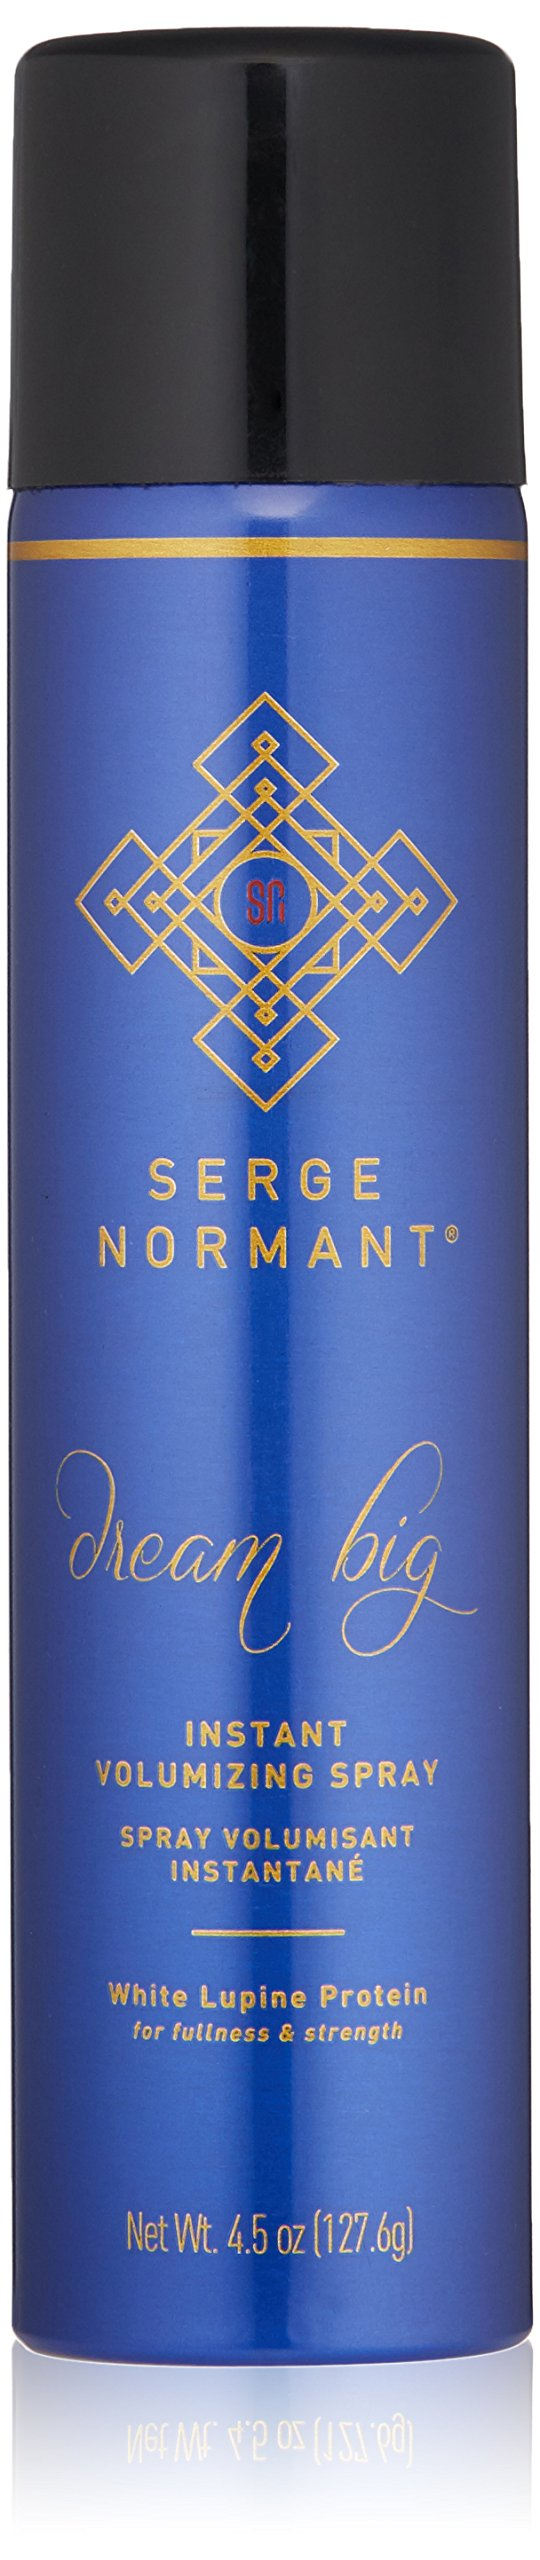 Serge Normant Dream Big Instant Volumizing Spray- 4.5 oz by Serge Normant